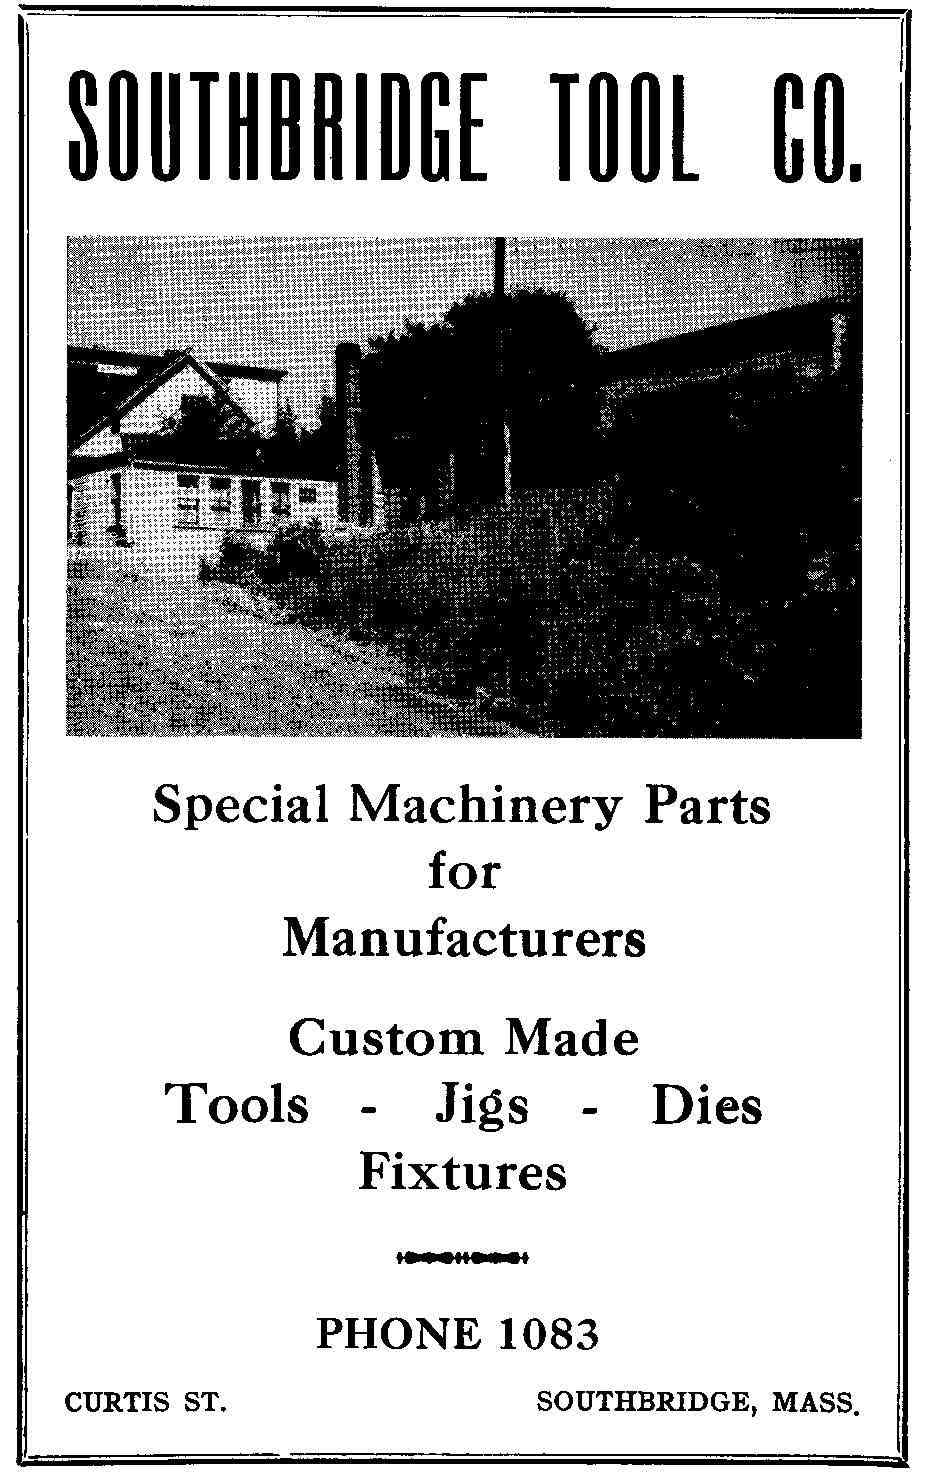 Southbridge, Massachusetts, USA - Ad for Southbridge Tool Company